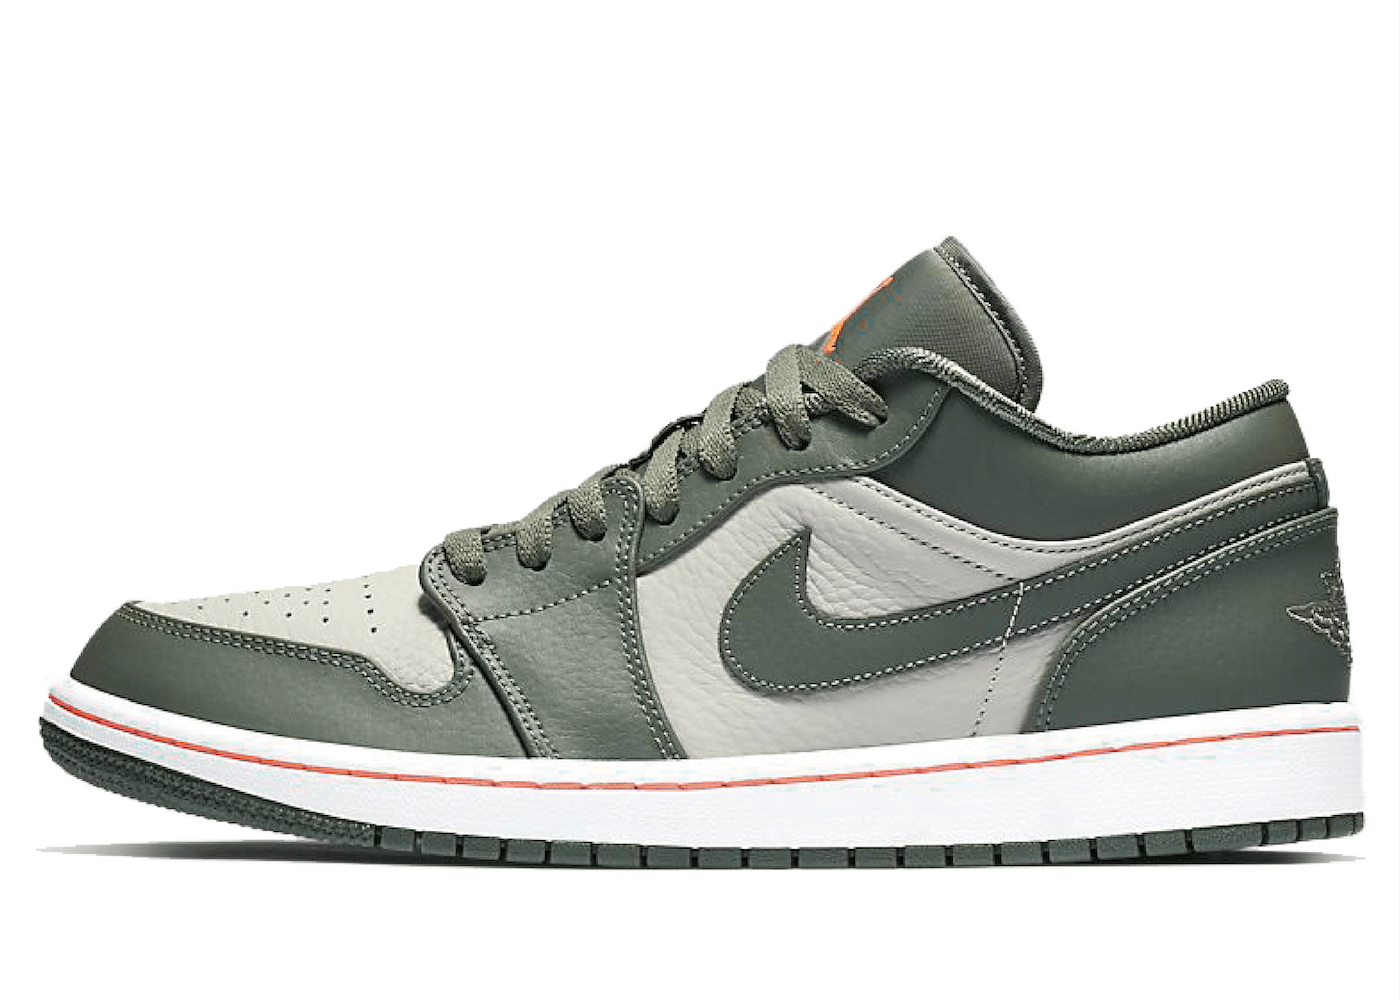 Nike Air Jordan 1 Low Military Greenの写真